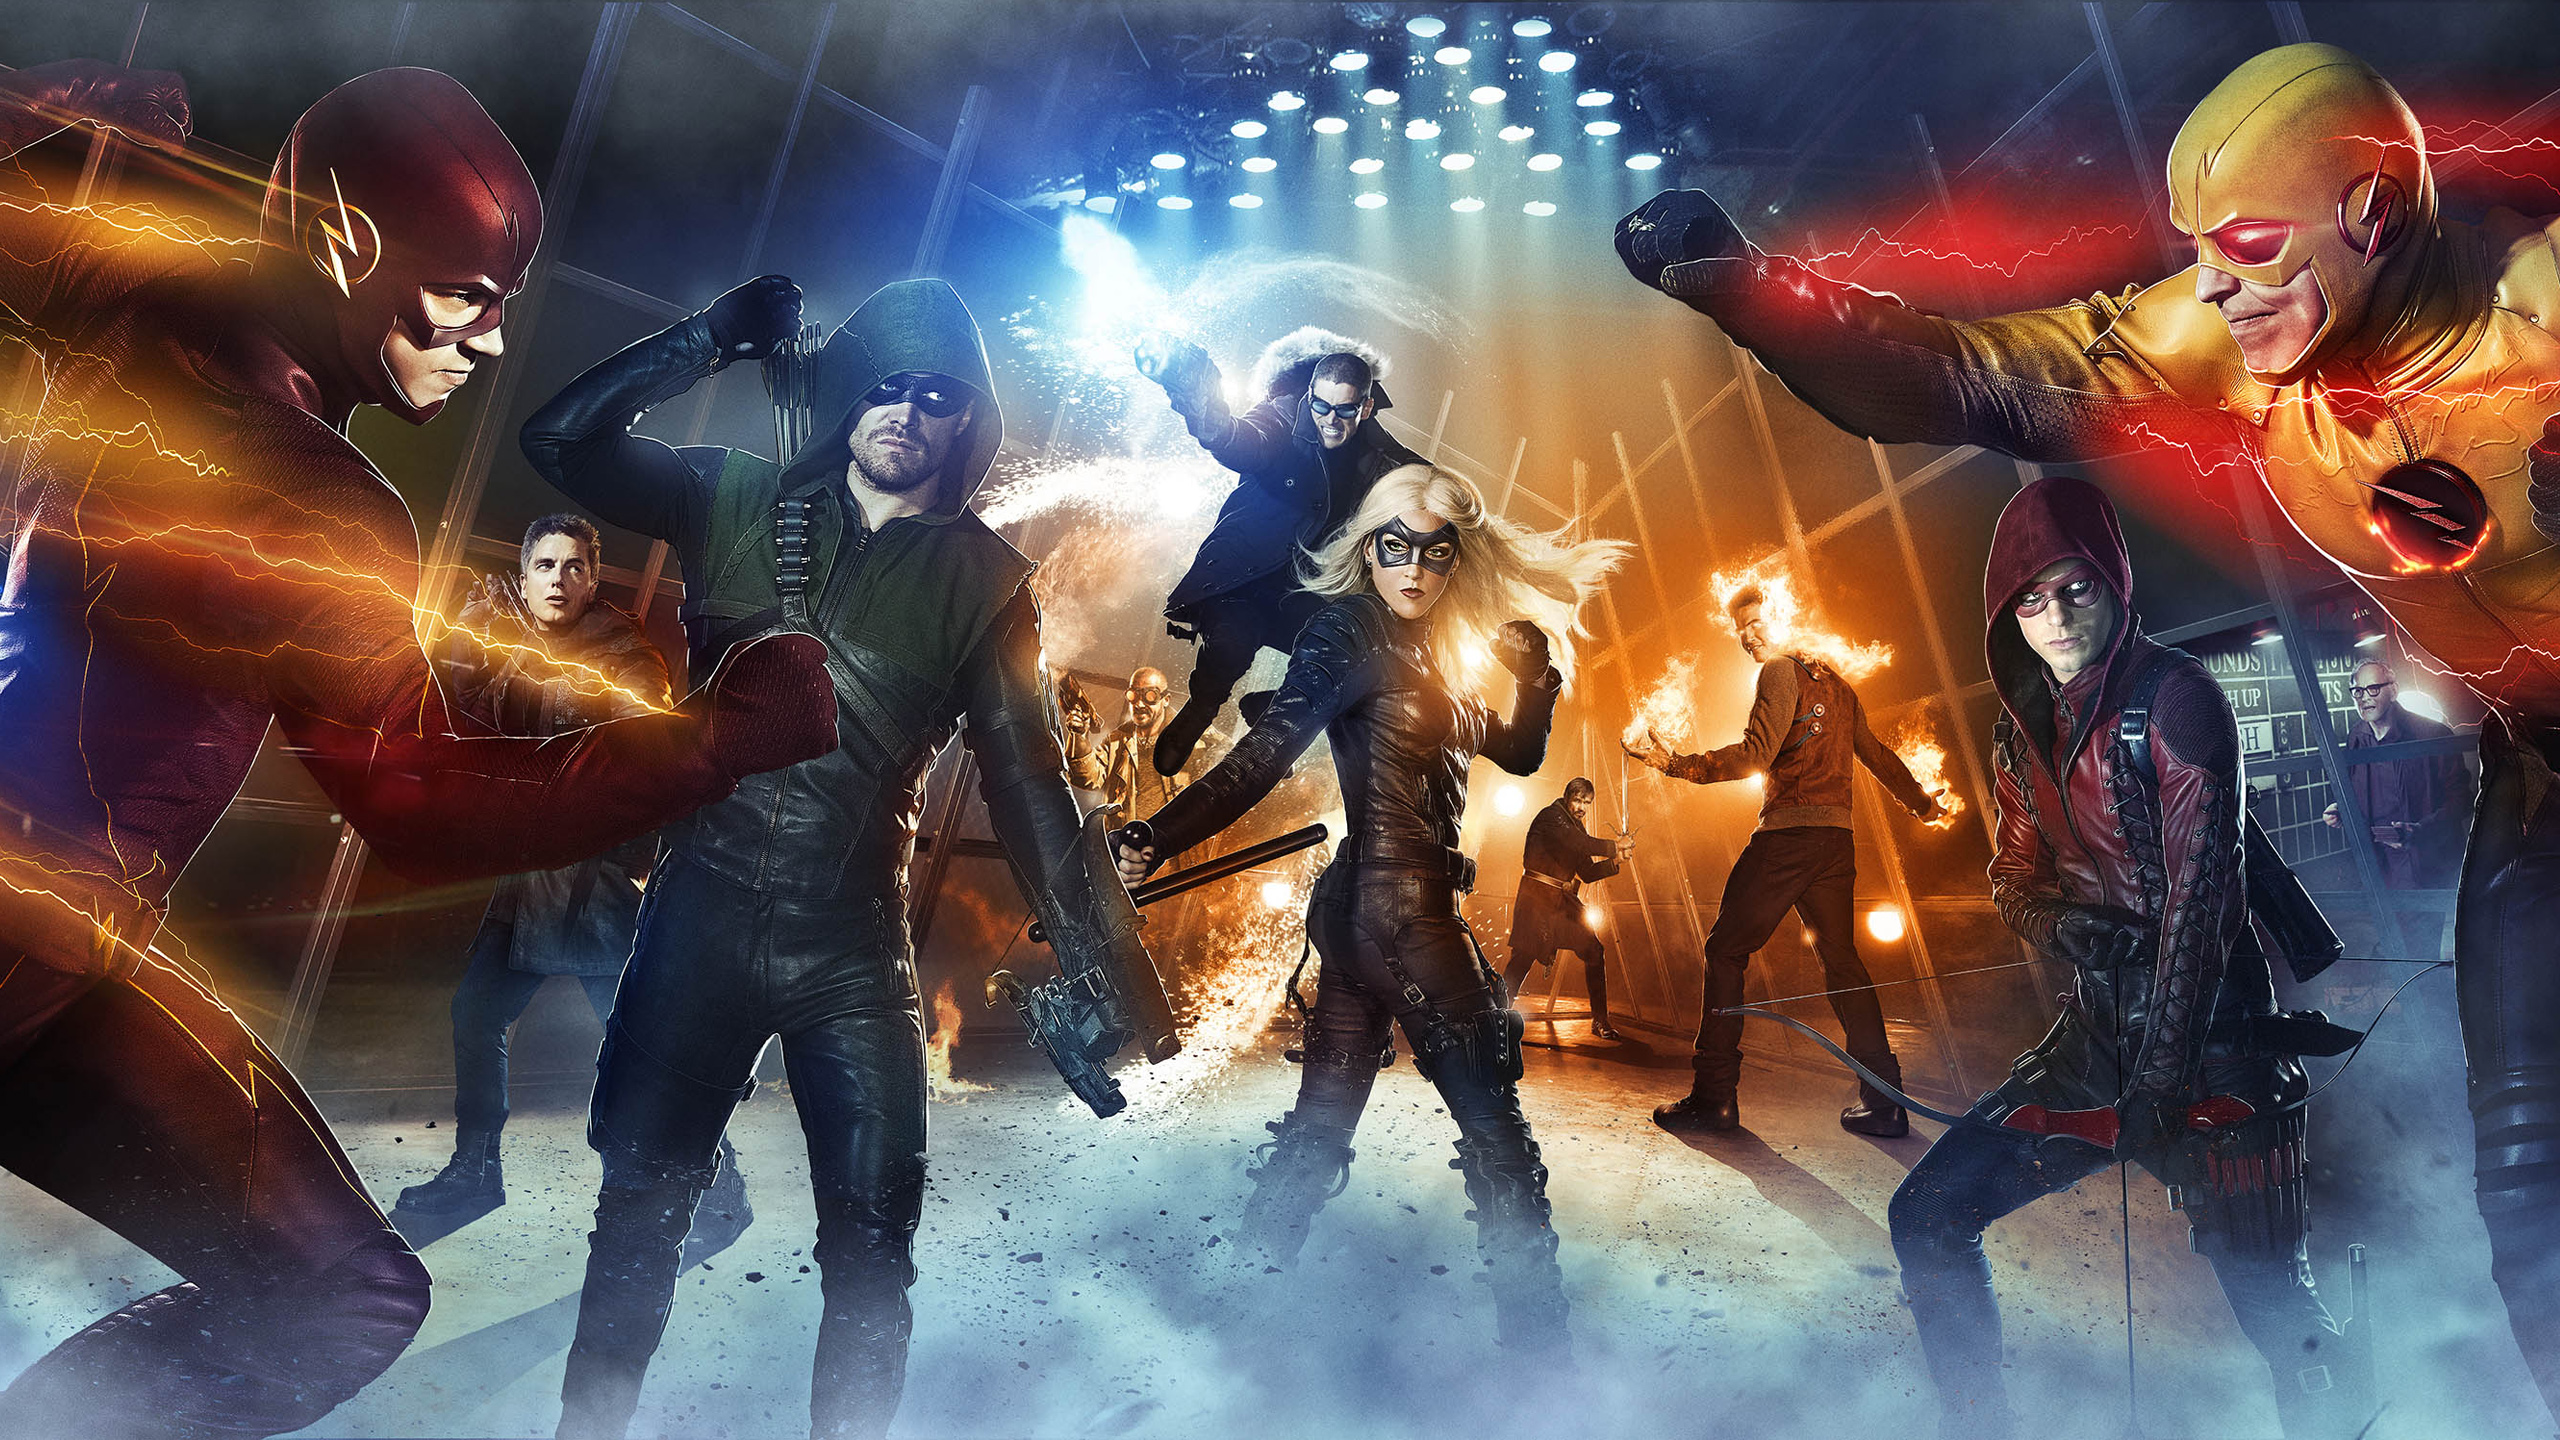 Arrow The Flash Wallpapers HD Wallpapers 2560x1440